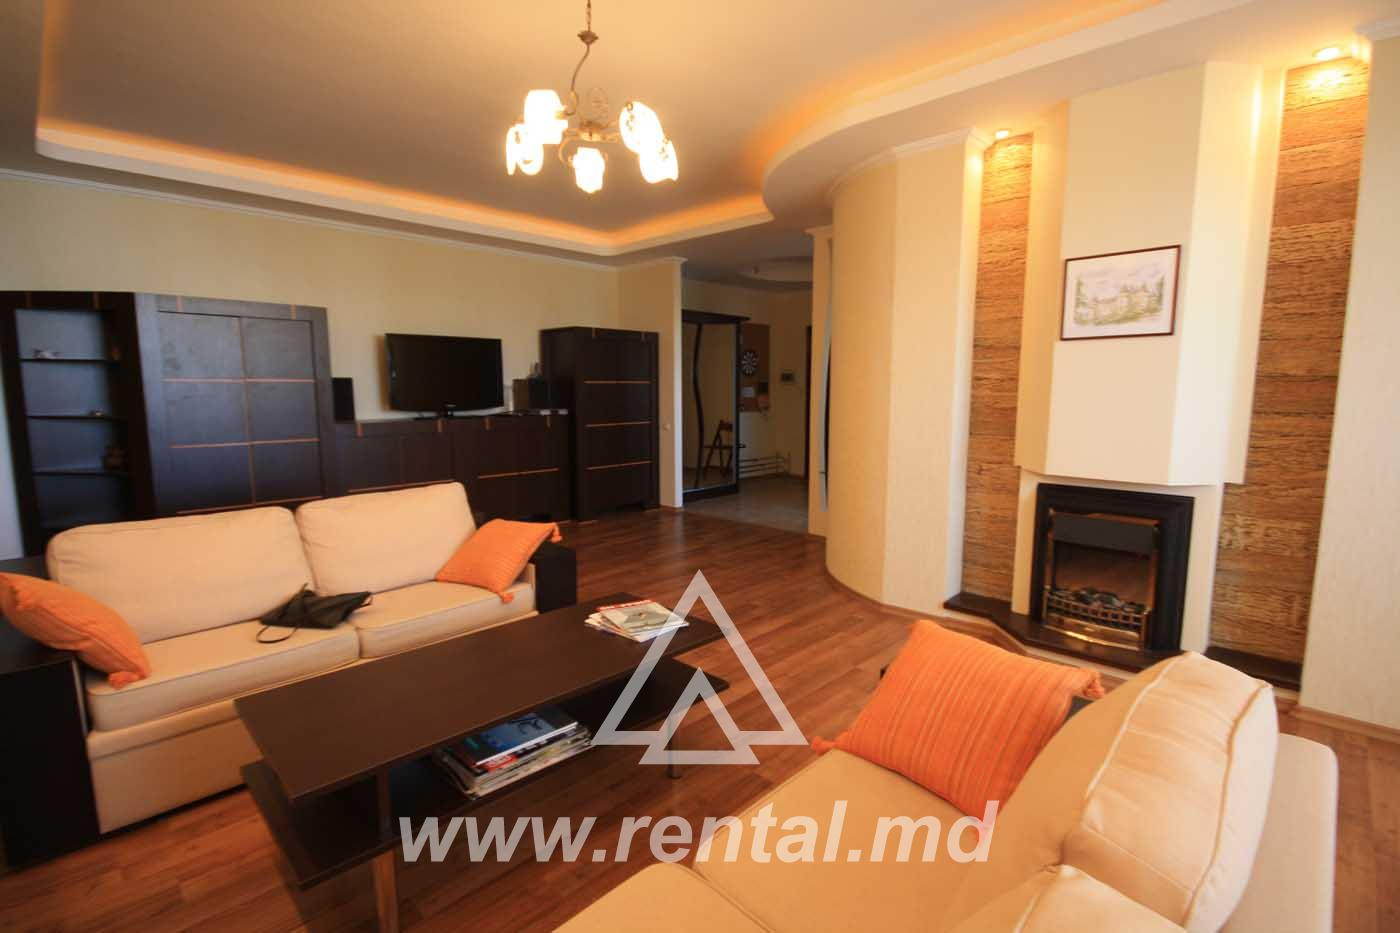 Modern apartment for rent near the city center